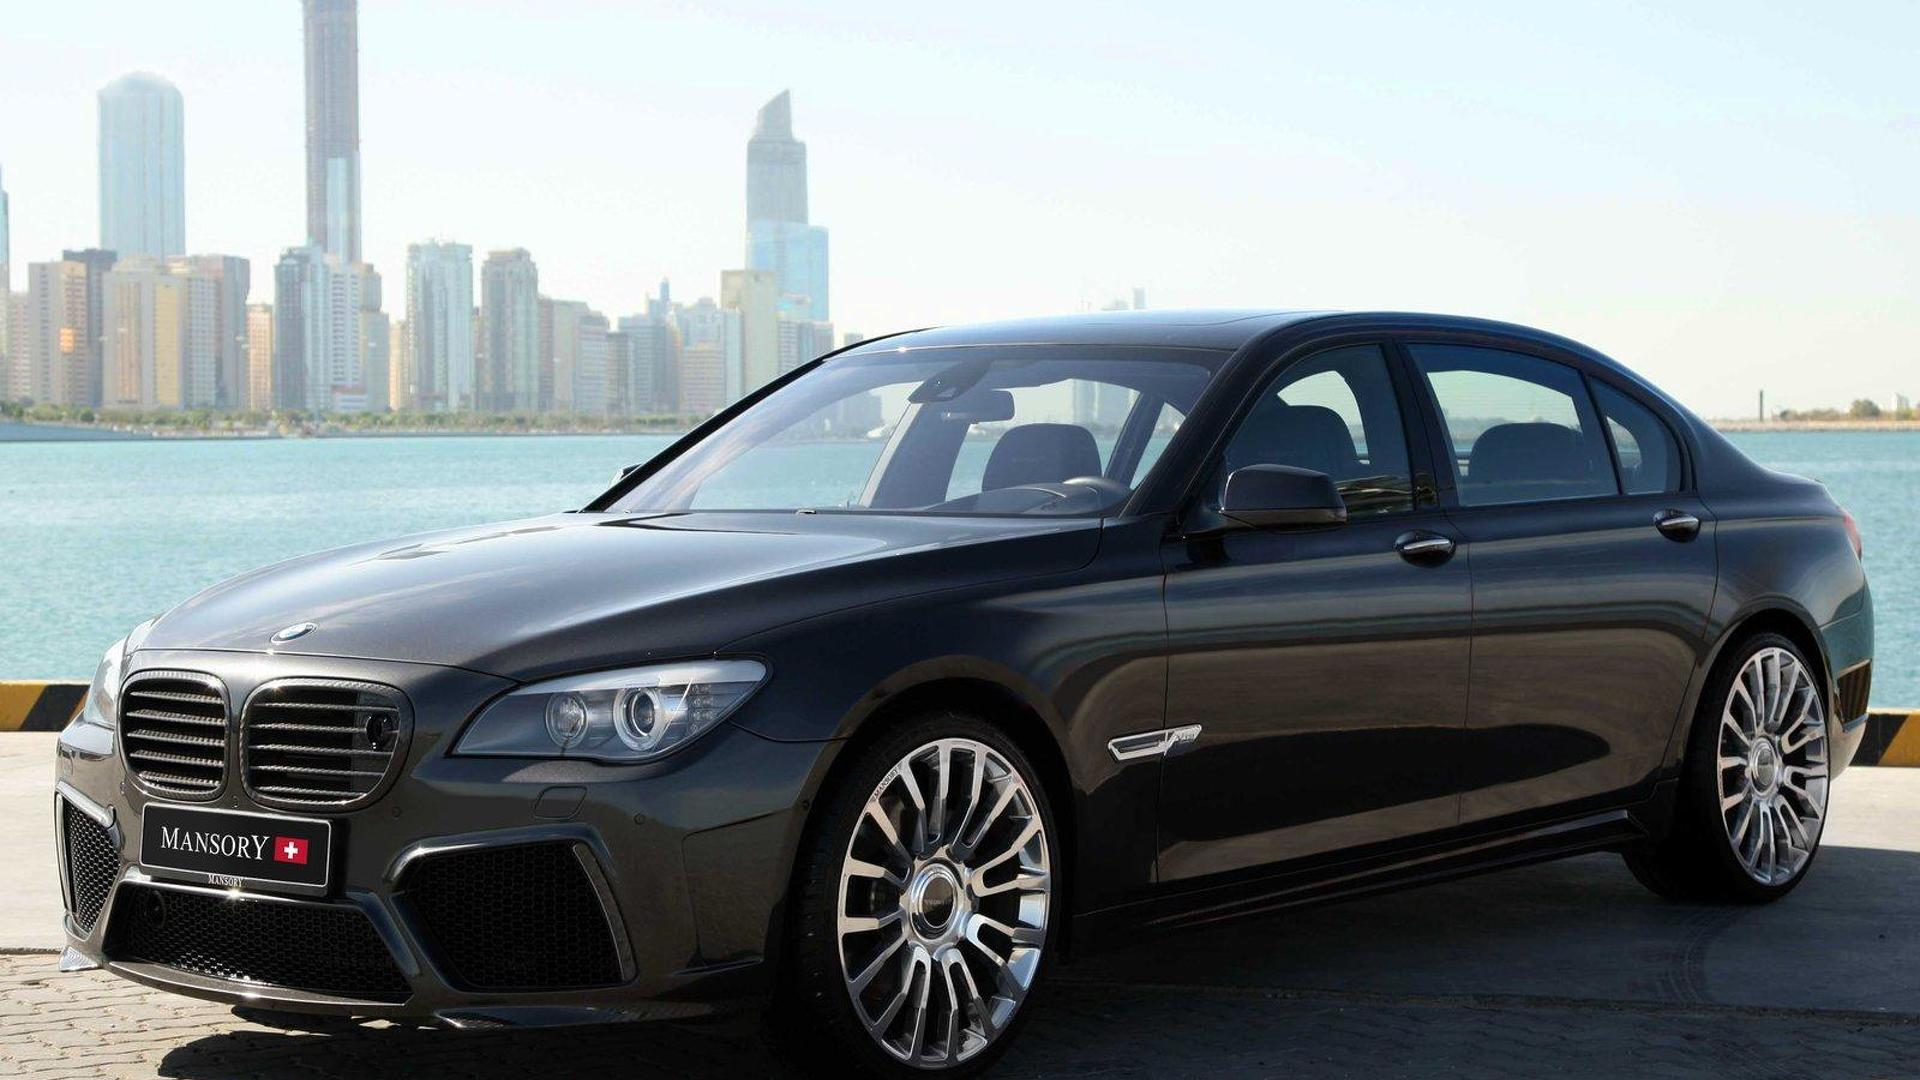 Mansory does the BMW 7-Series